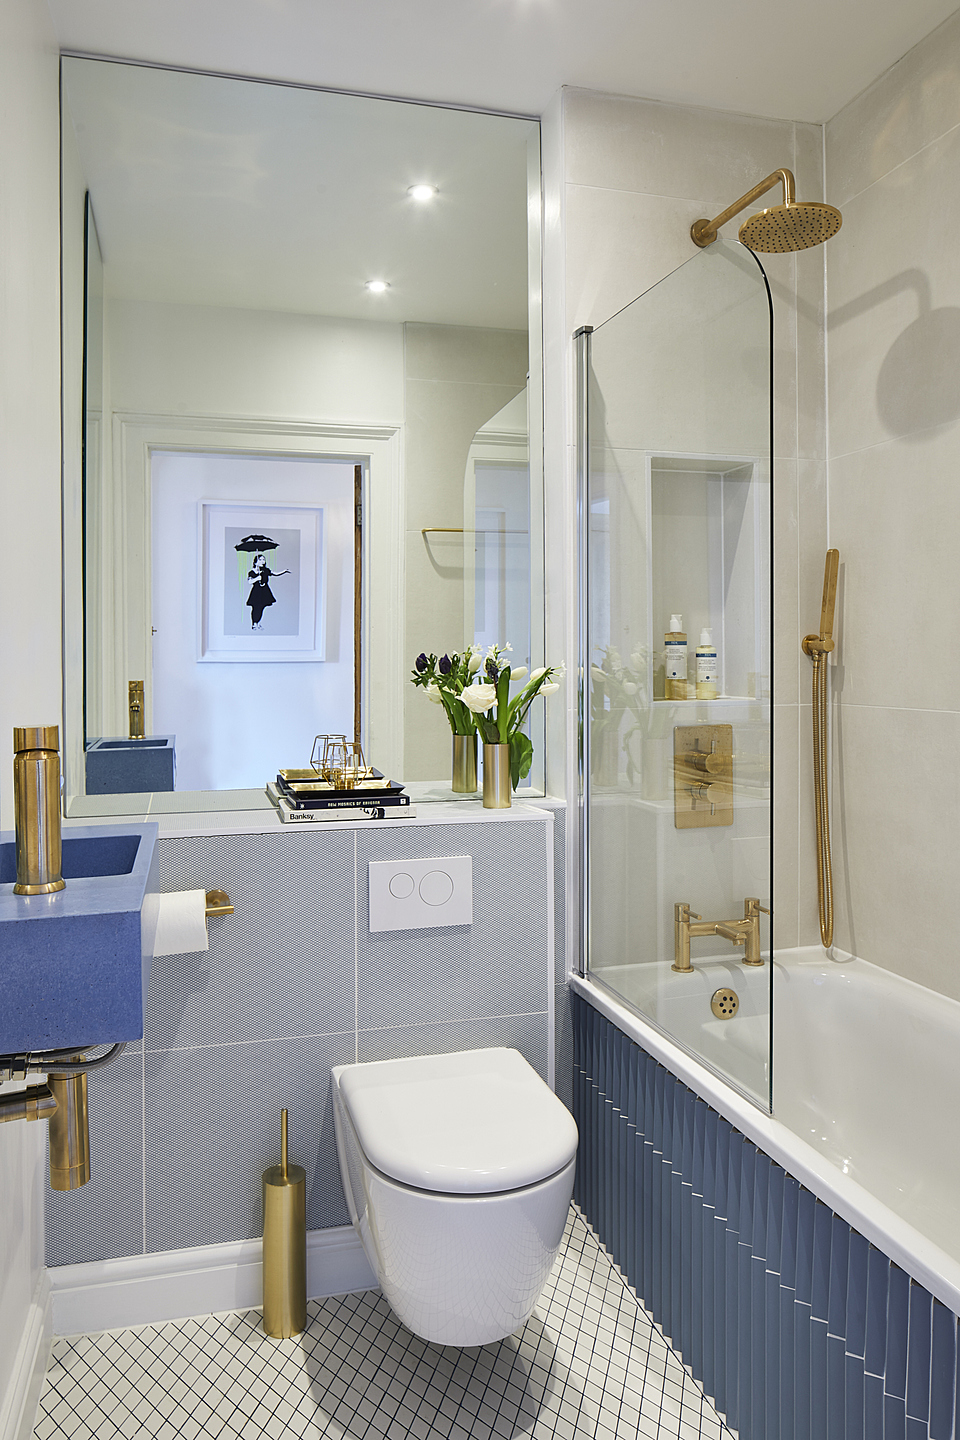 Designing a Small Bathroom – Ideas and Tips